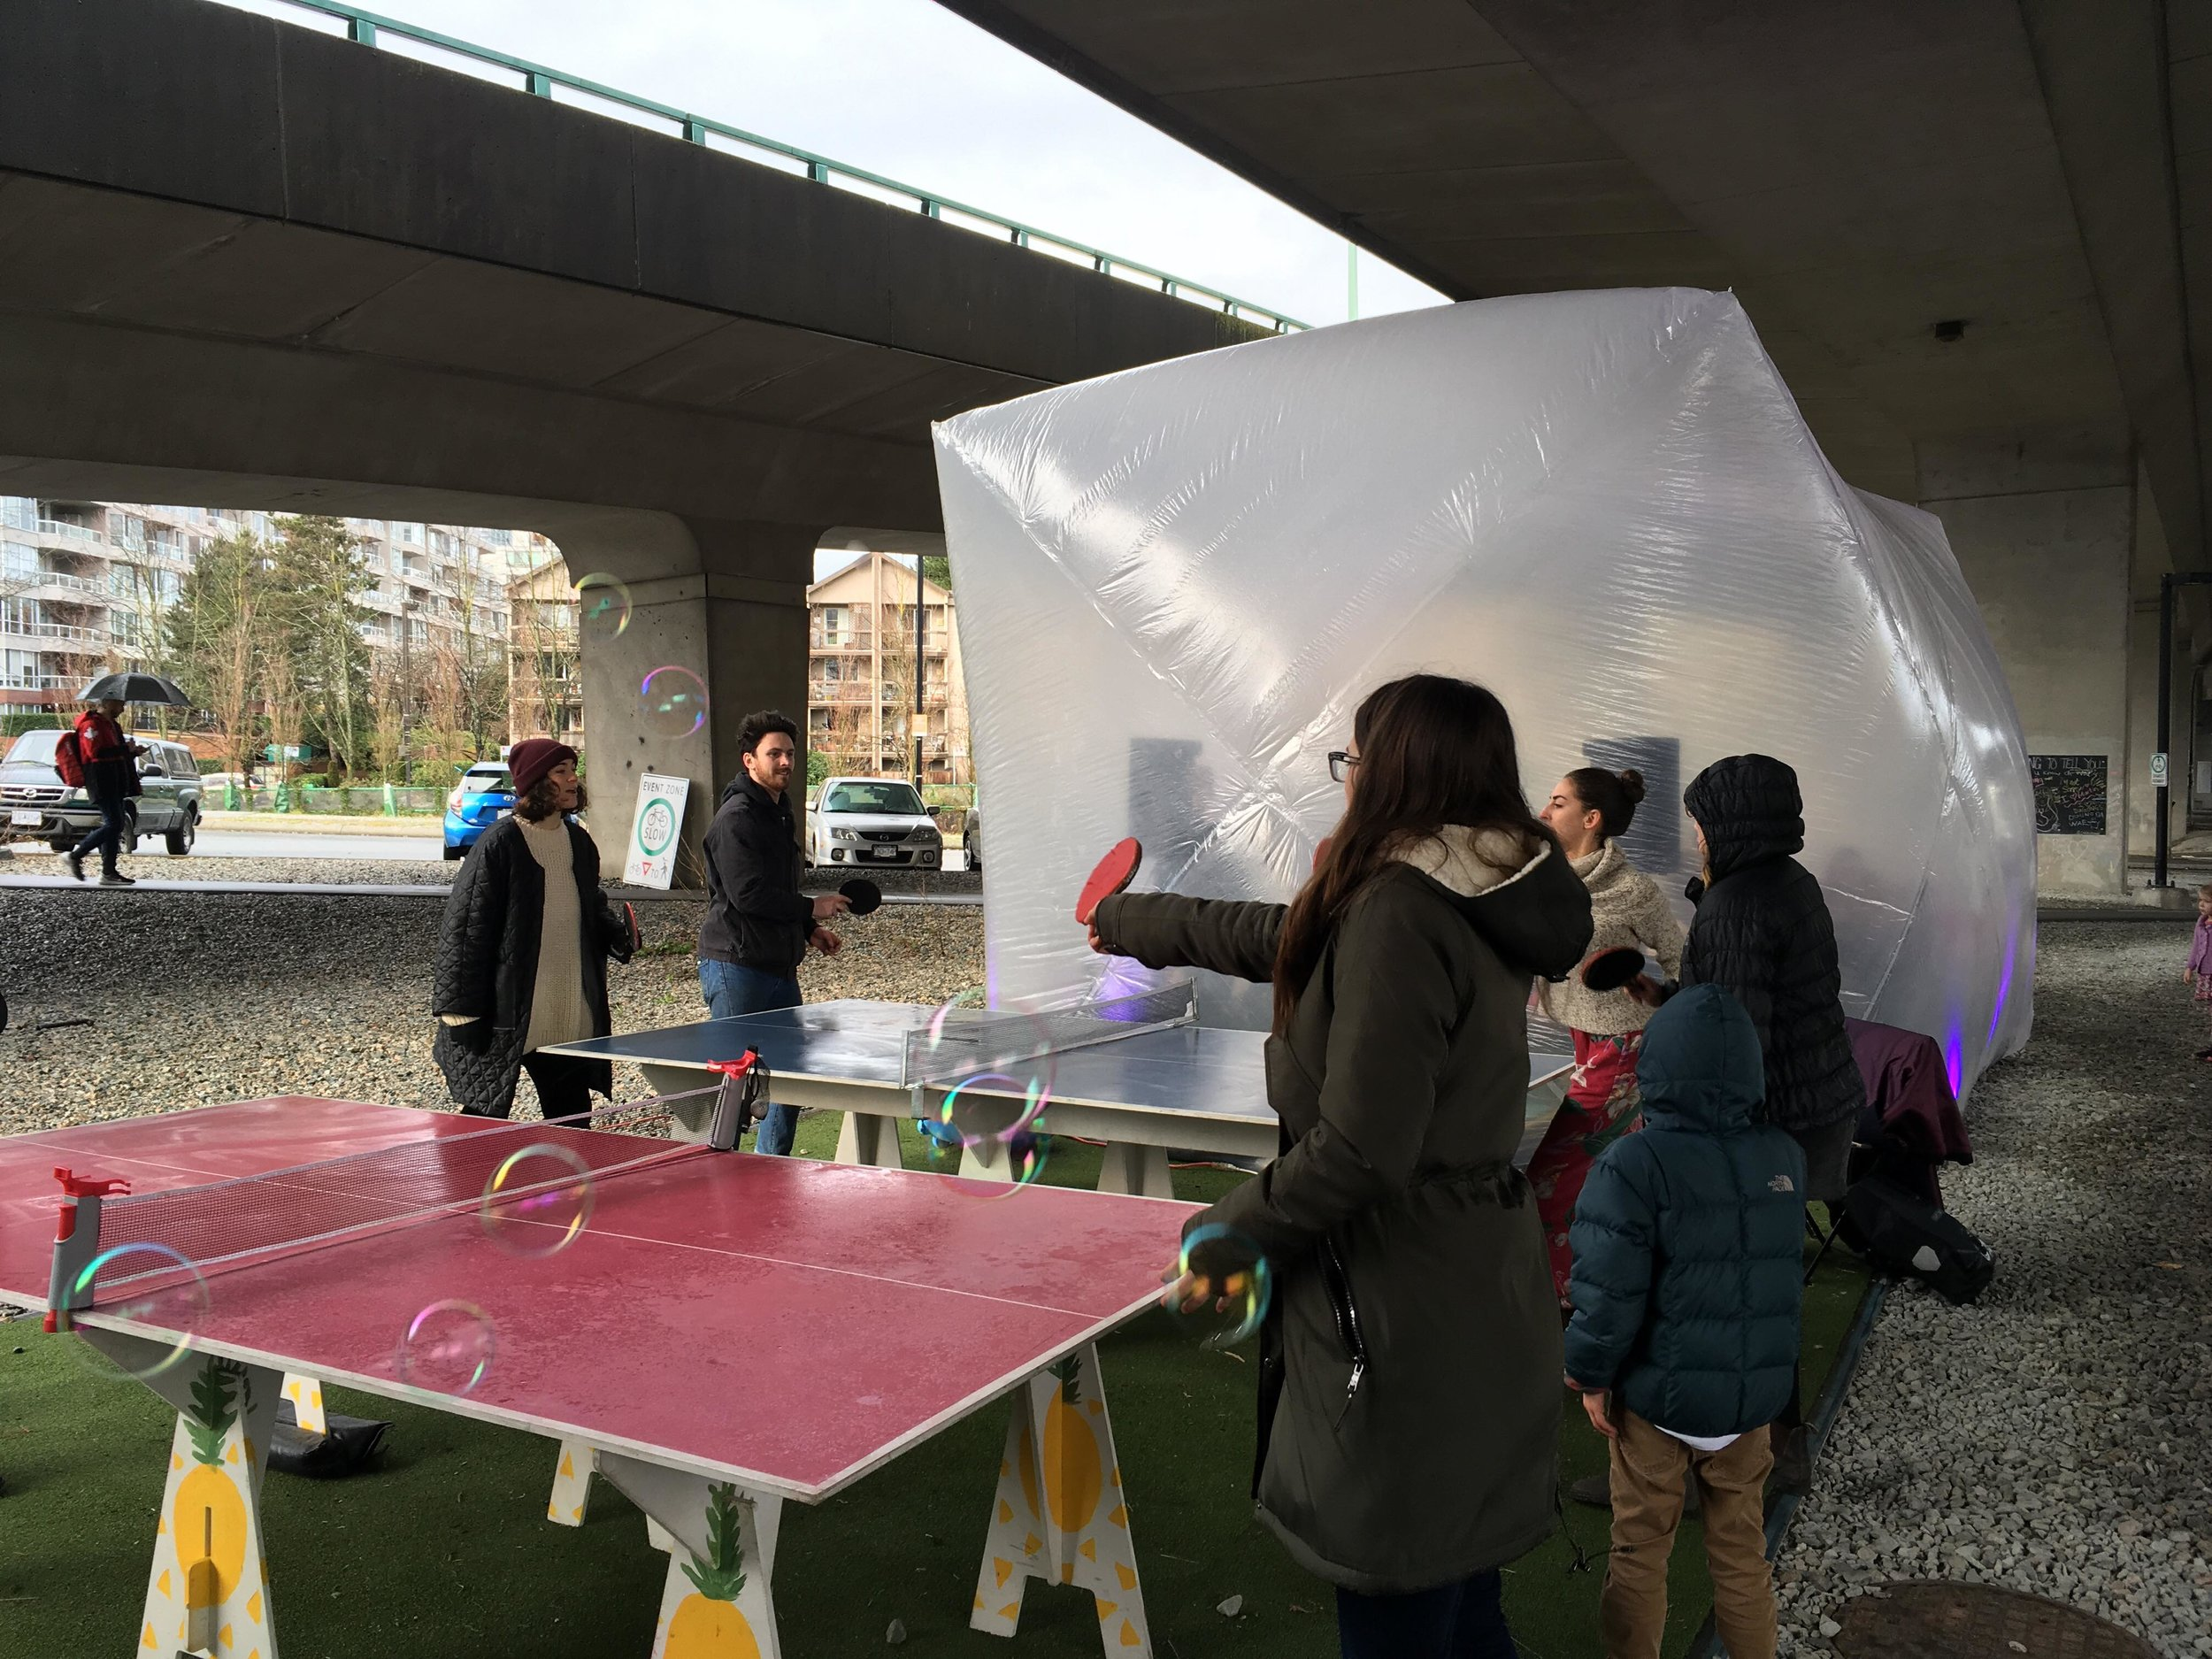 ping-pong and pop! under the bridge